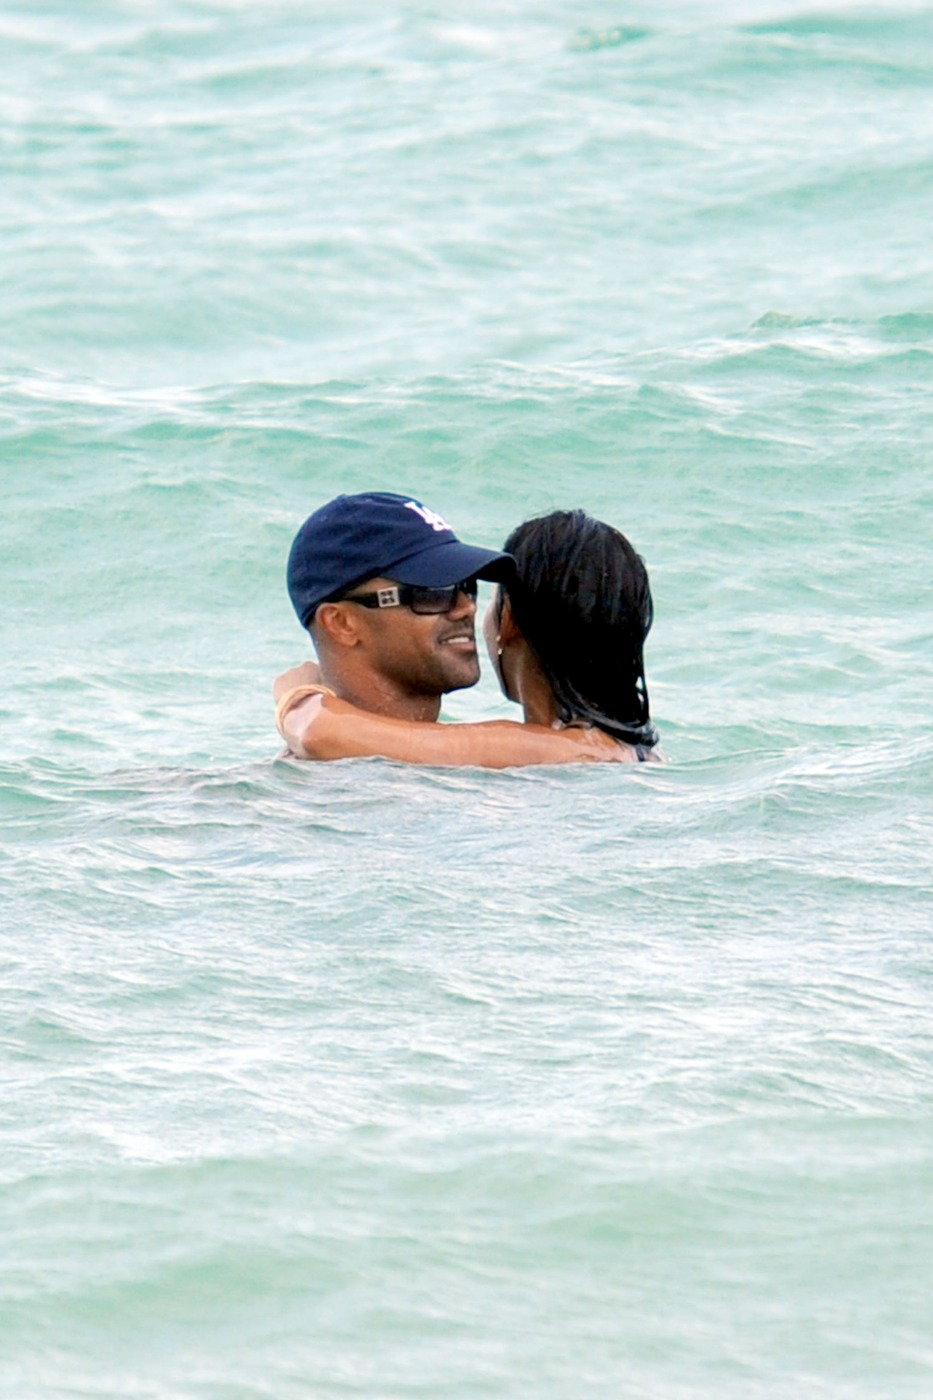 Shemar moore naked on beach not